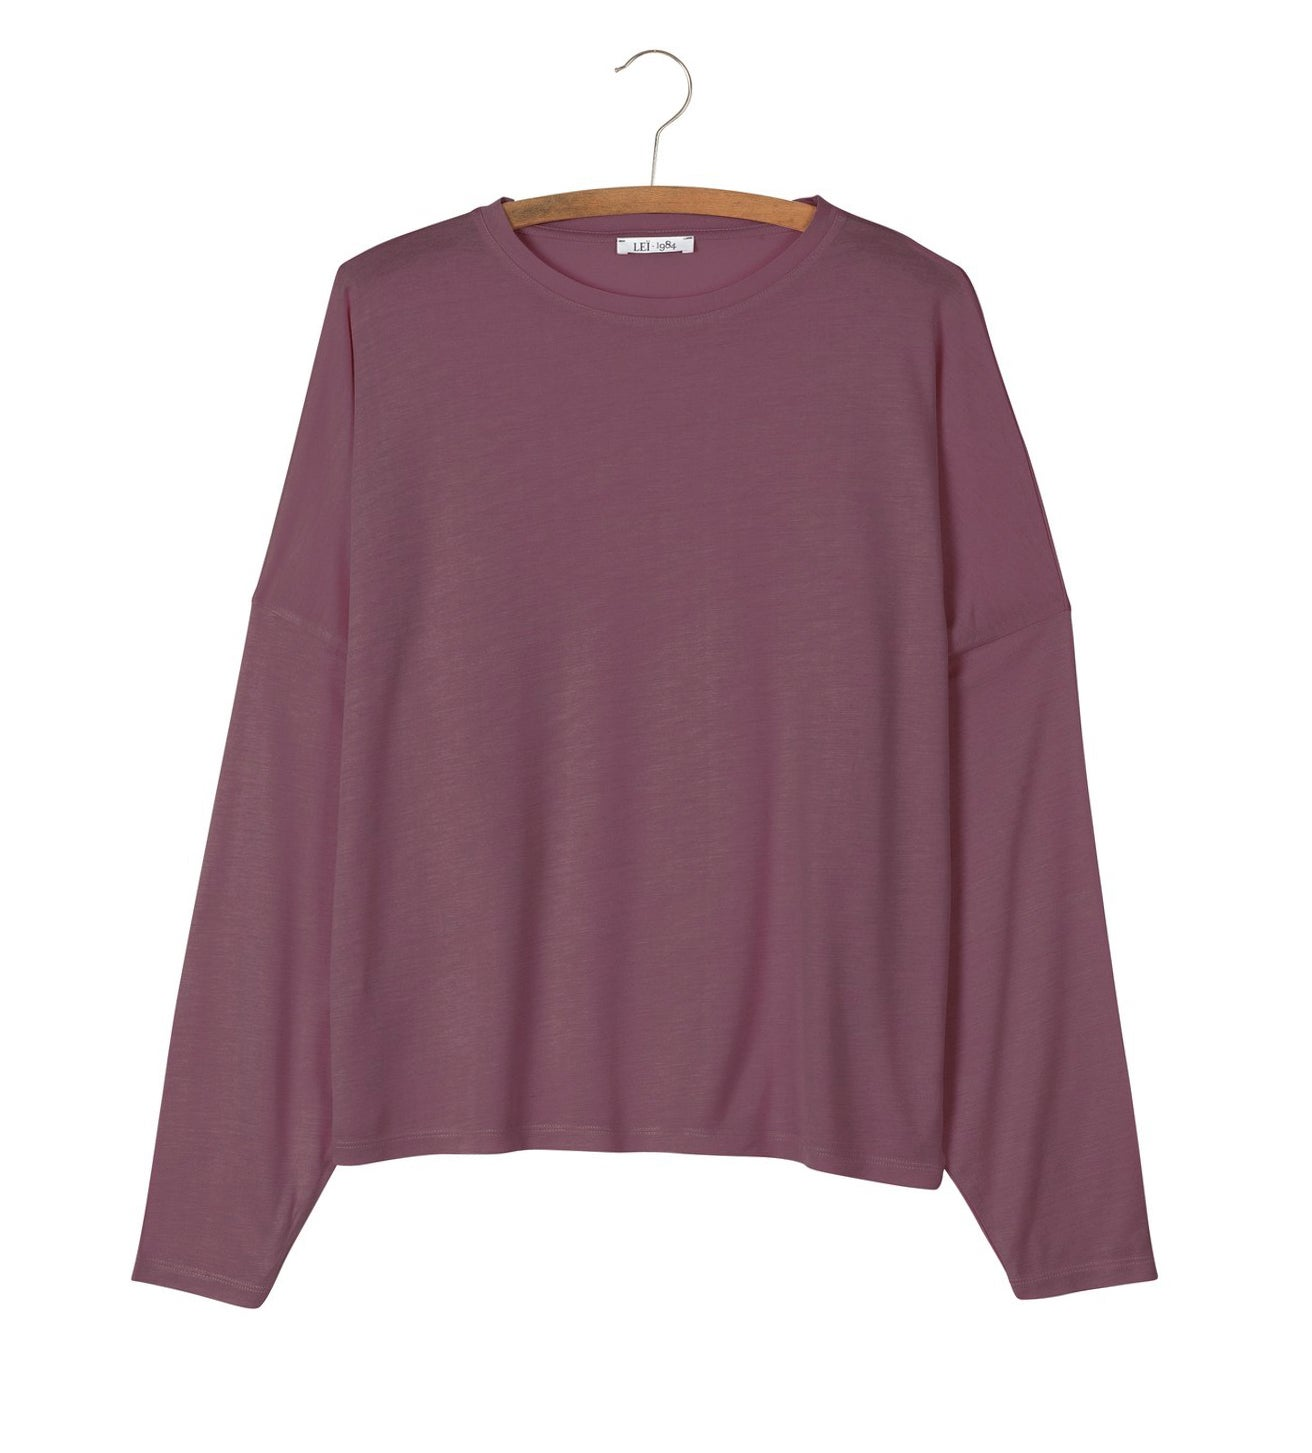 Image of Top oversized viscose MARTHA 69€ -60%